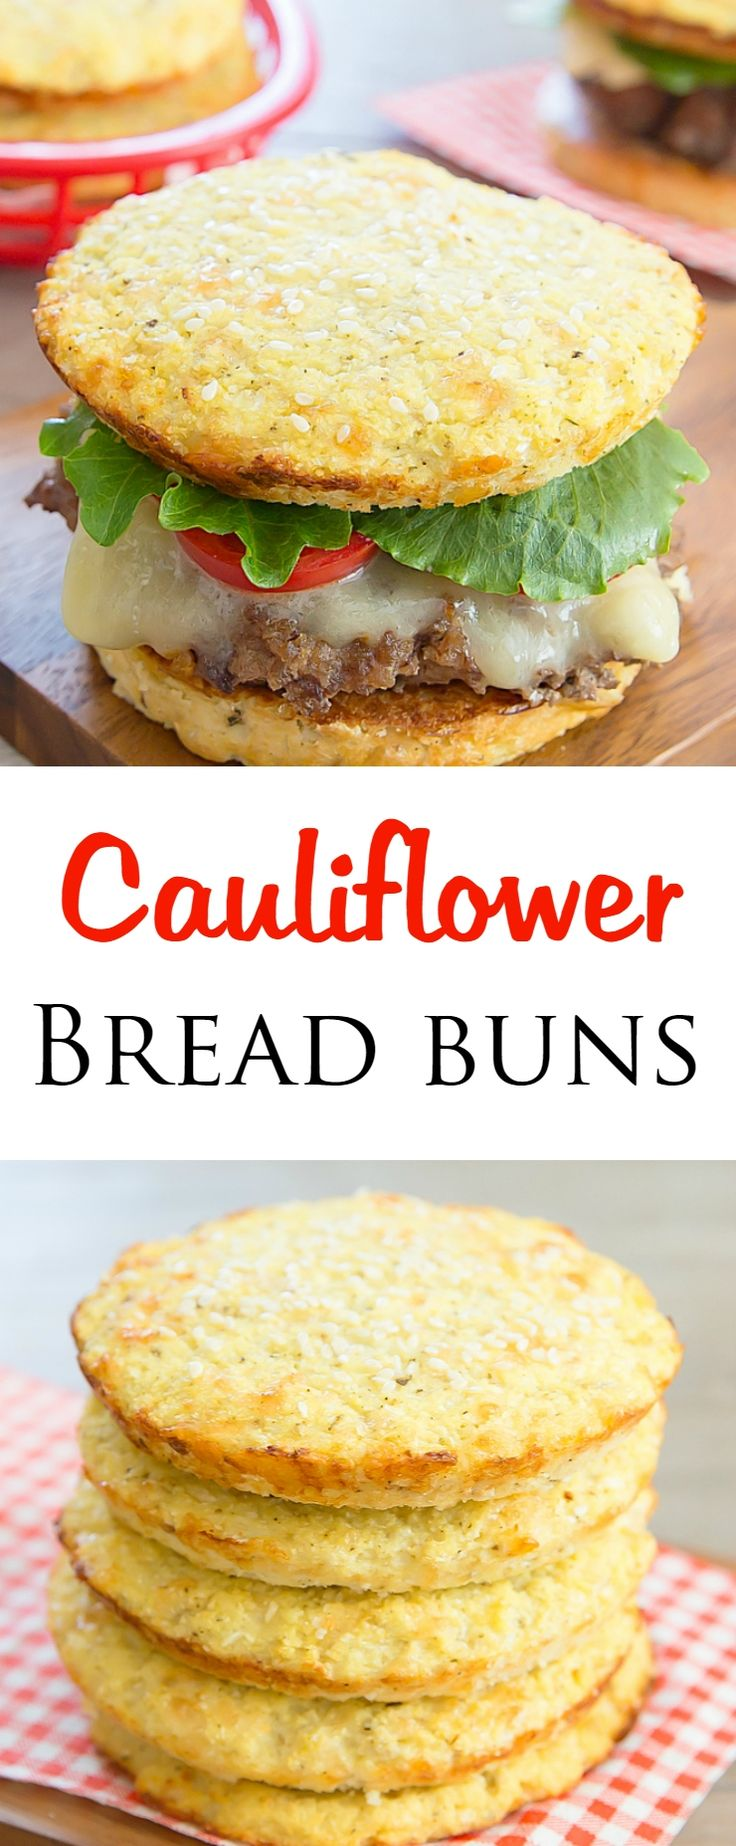 Cauliflower Bread Buns. Low carb and gluten free! #weightlossbeforeandafter